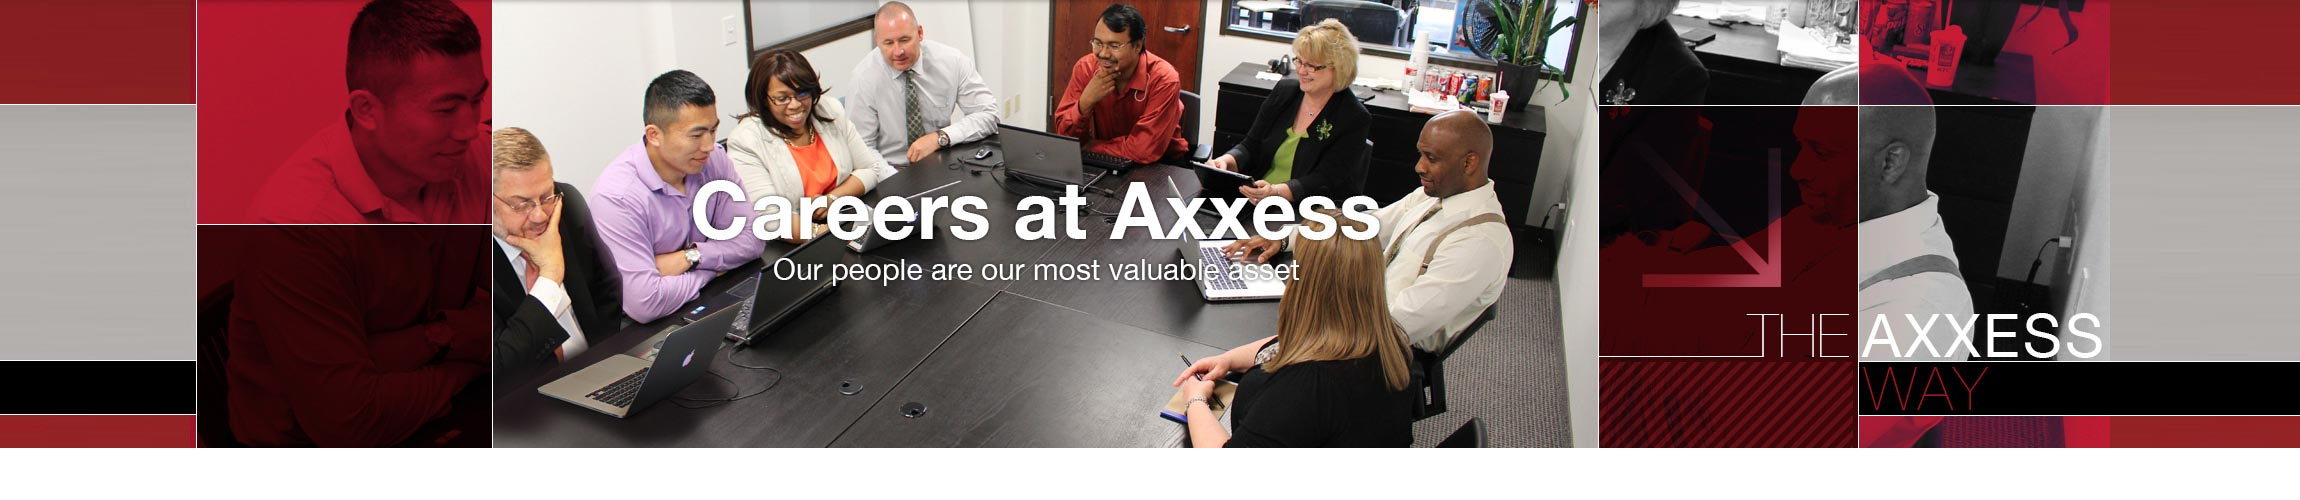 Careers at Axxess